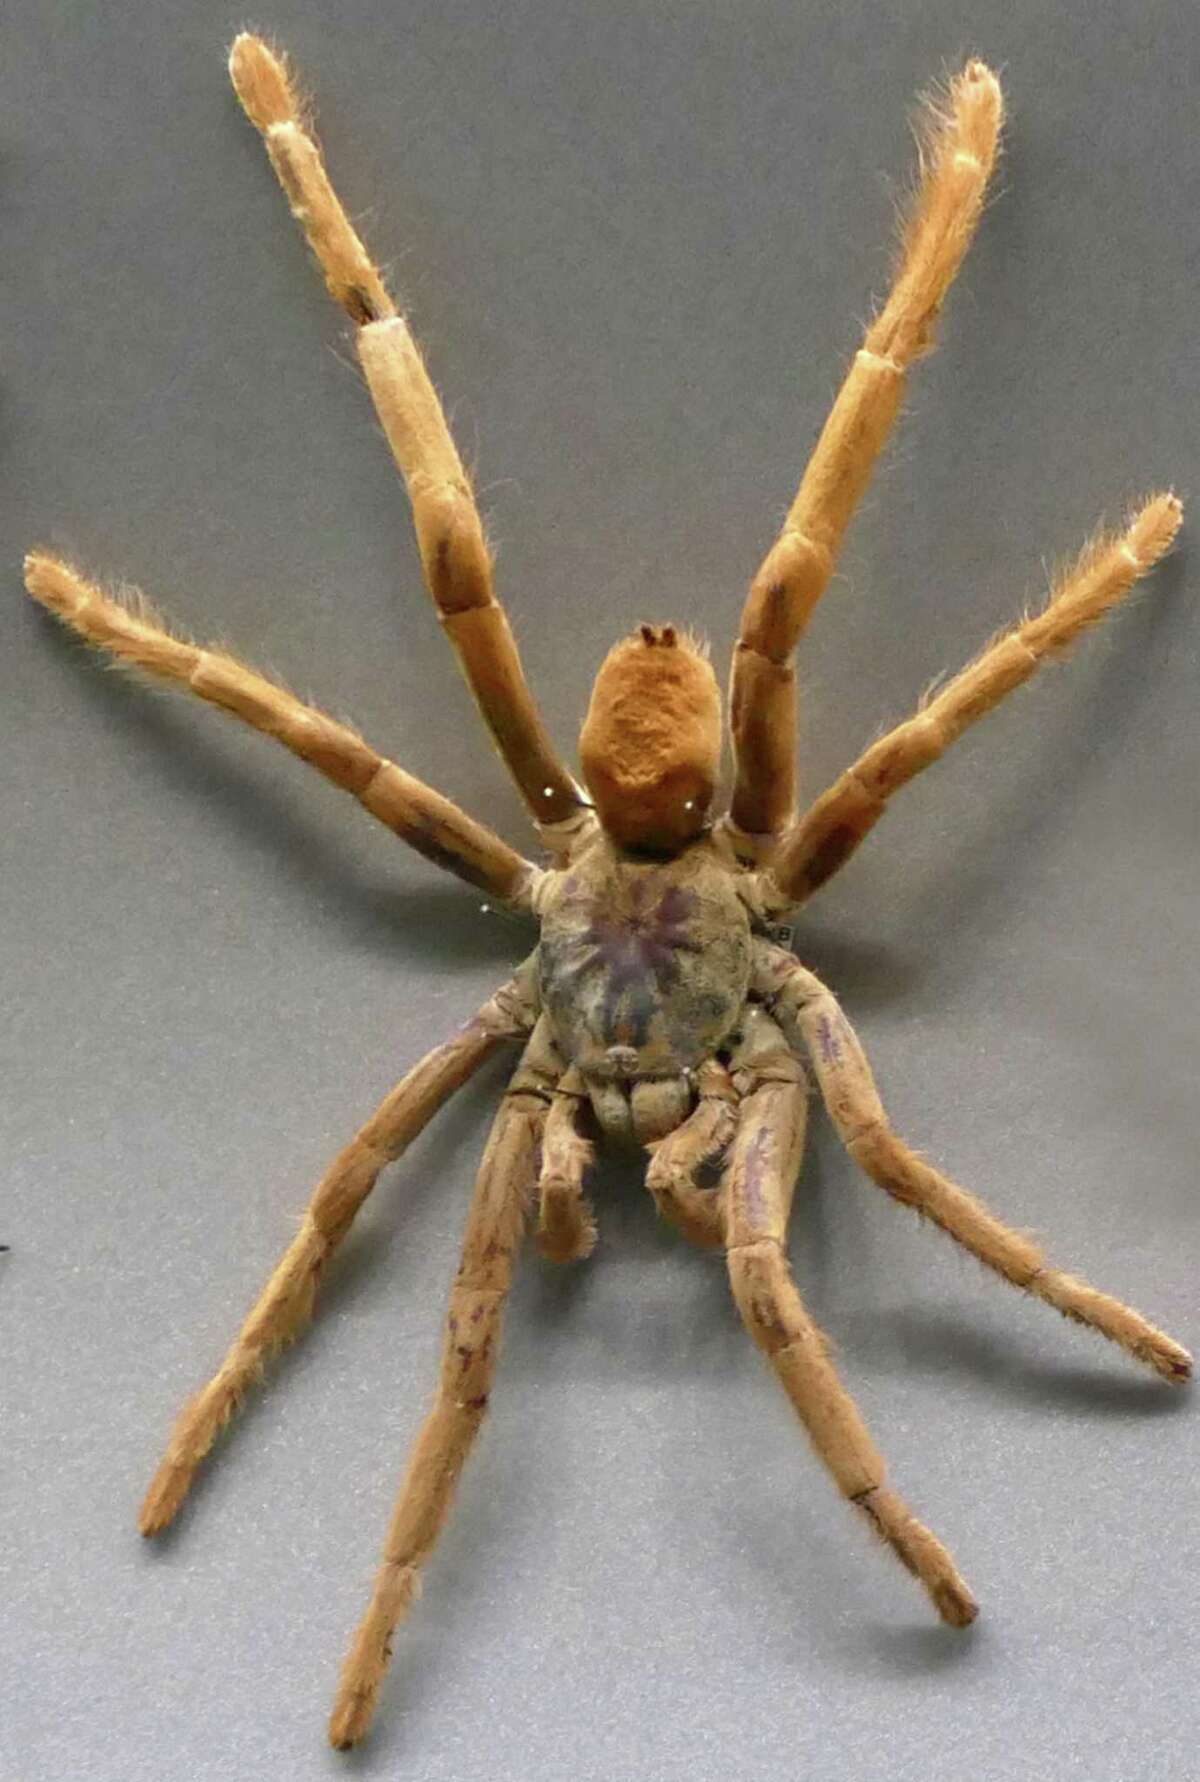 The wolf spider, a member of the family Lycosidae, is a robust and agile hunter with excellent eyesight. They live mostly in solitude and hunt alone, and do not spin webs.